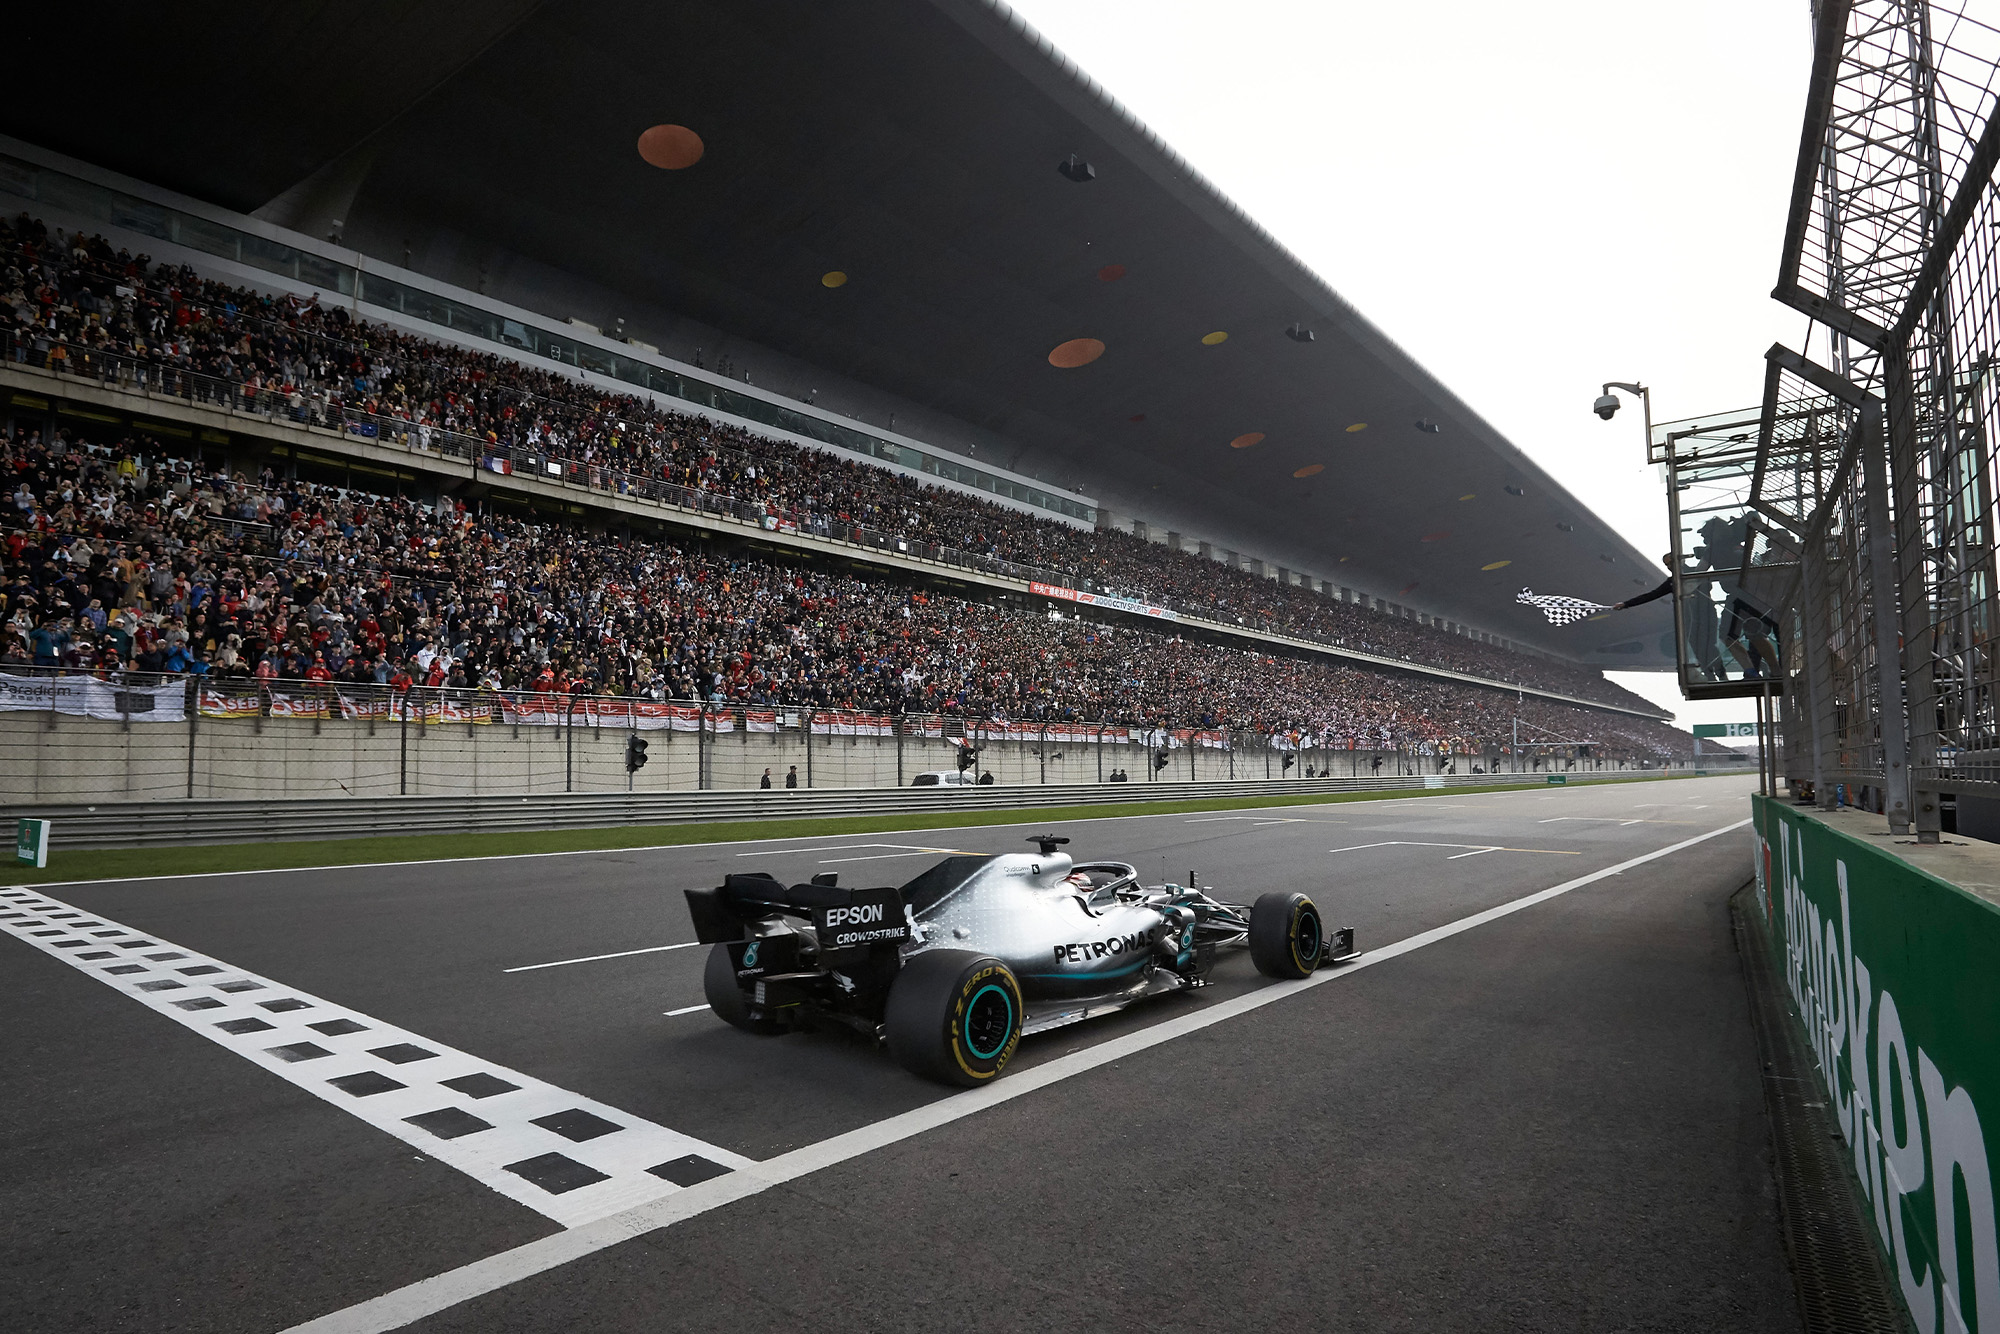 Lewis Hamilton crosses the line to win the 2019 Chinese Grand Prix